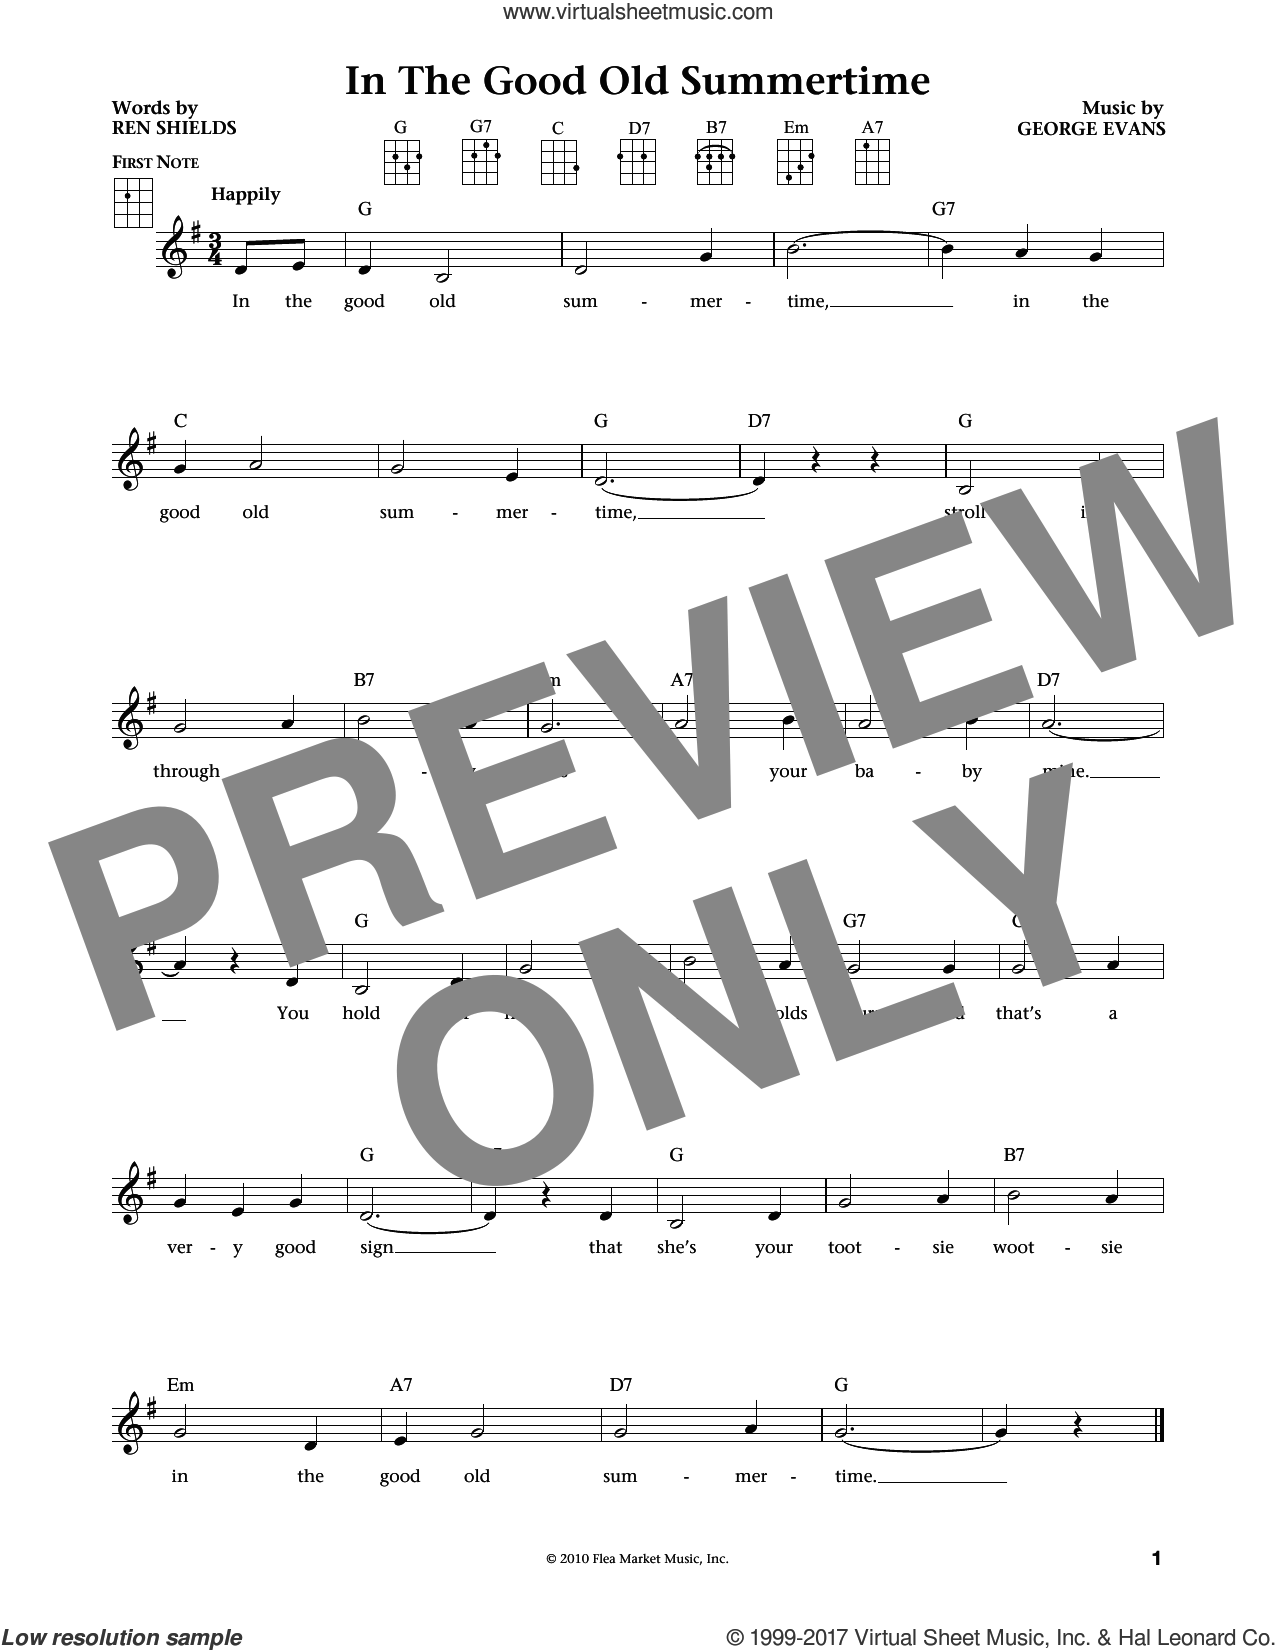 In The Good Old Summertime sheet music for ukulele by Ren Shields, Jim Beloff, Liz Beloff and George Evans, intermediate skill level